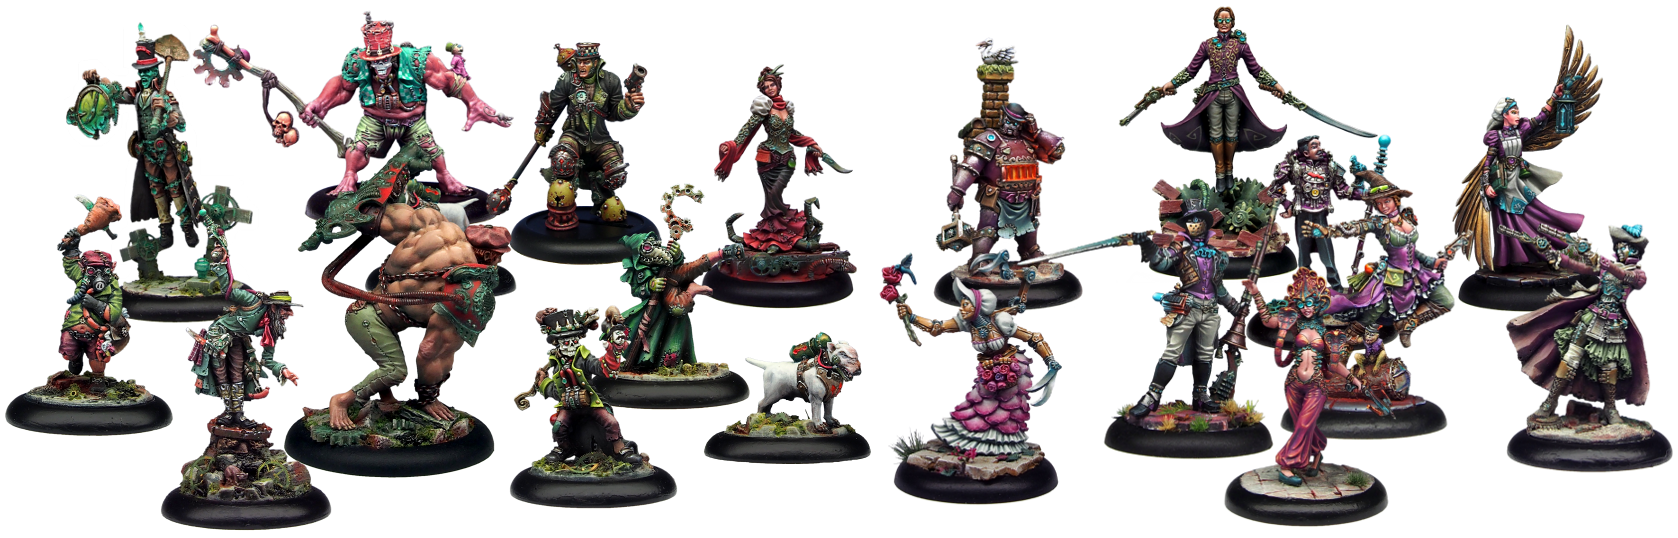 the miniatures demented games